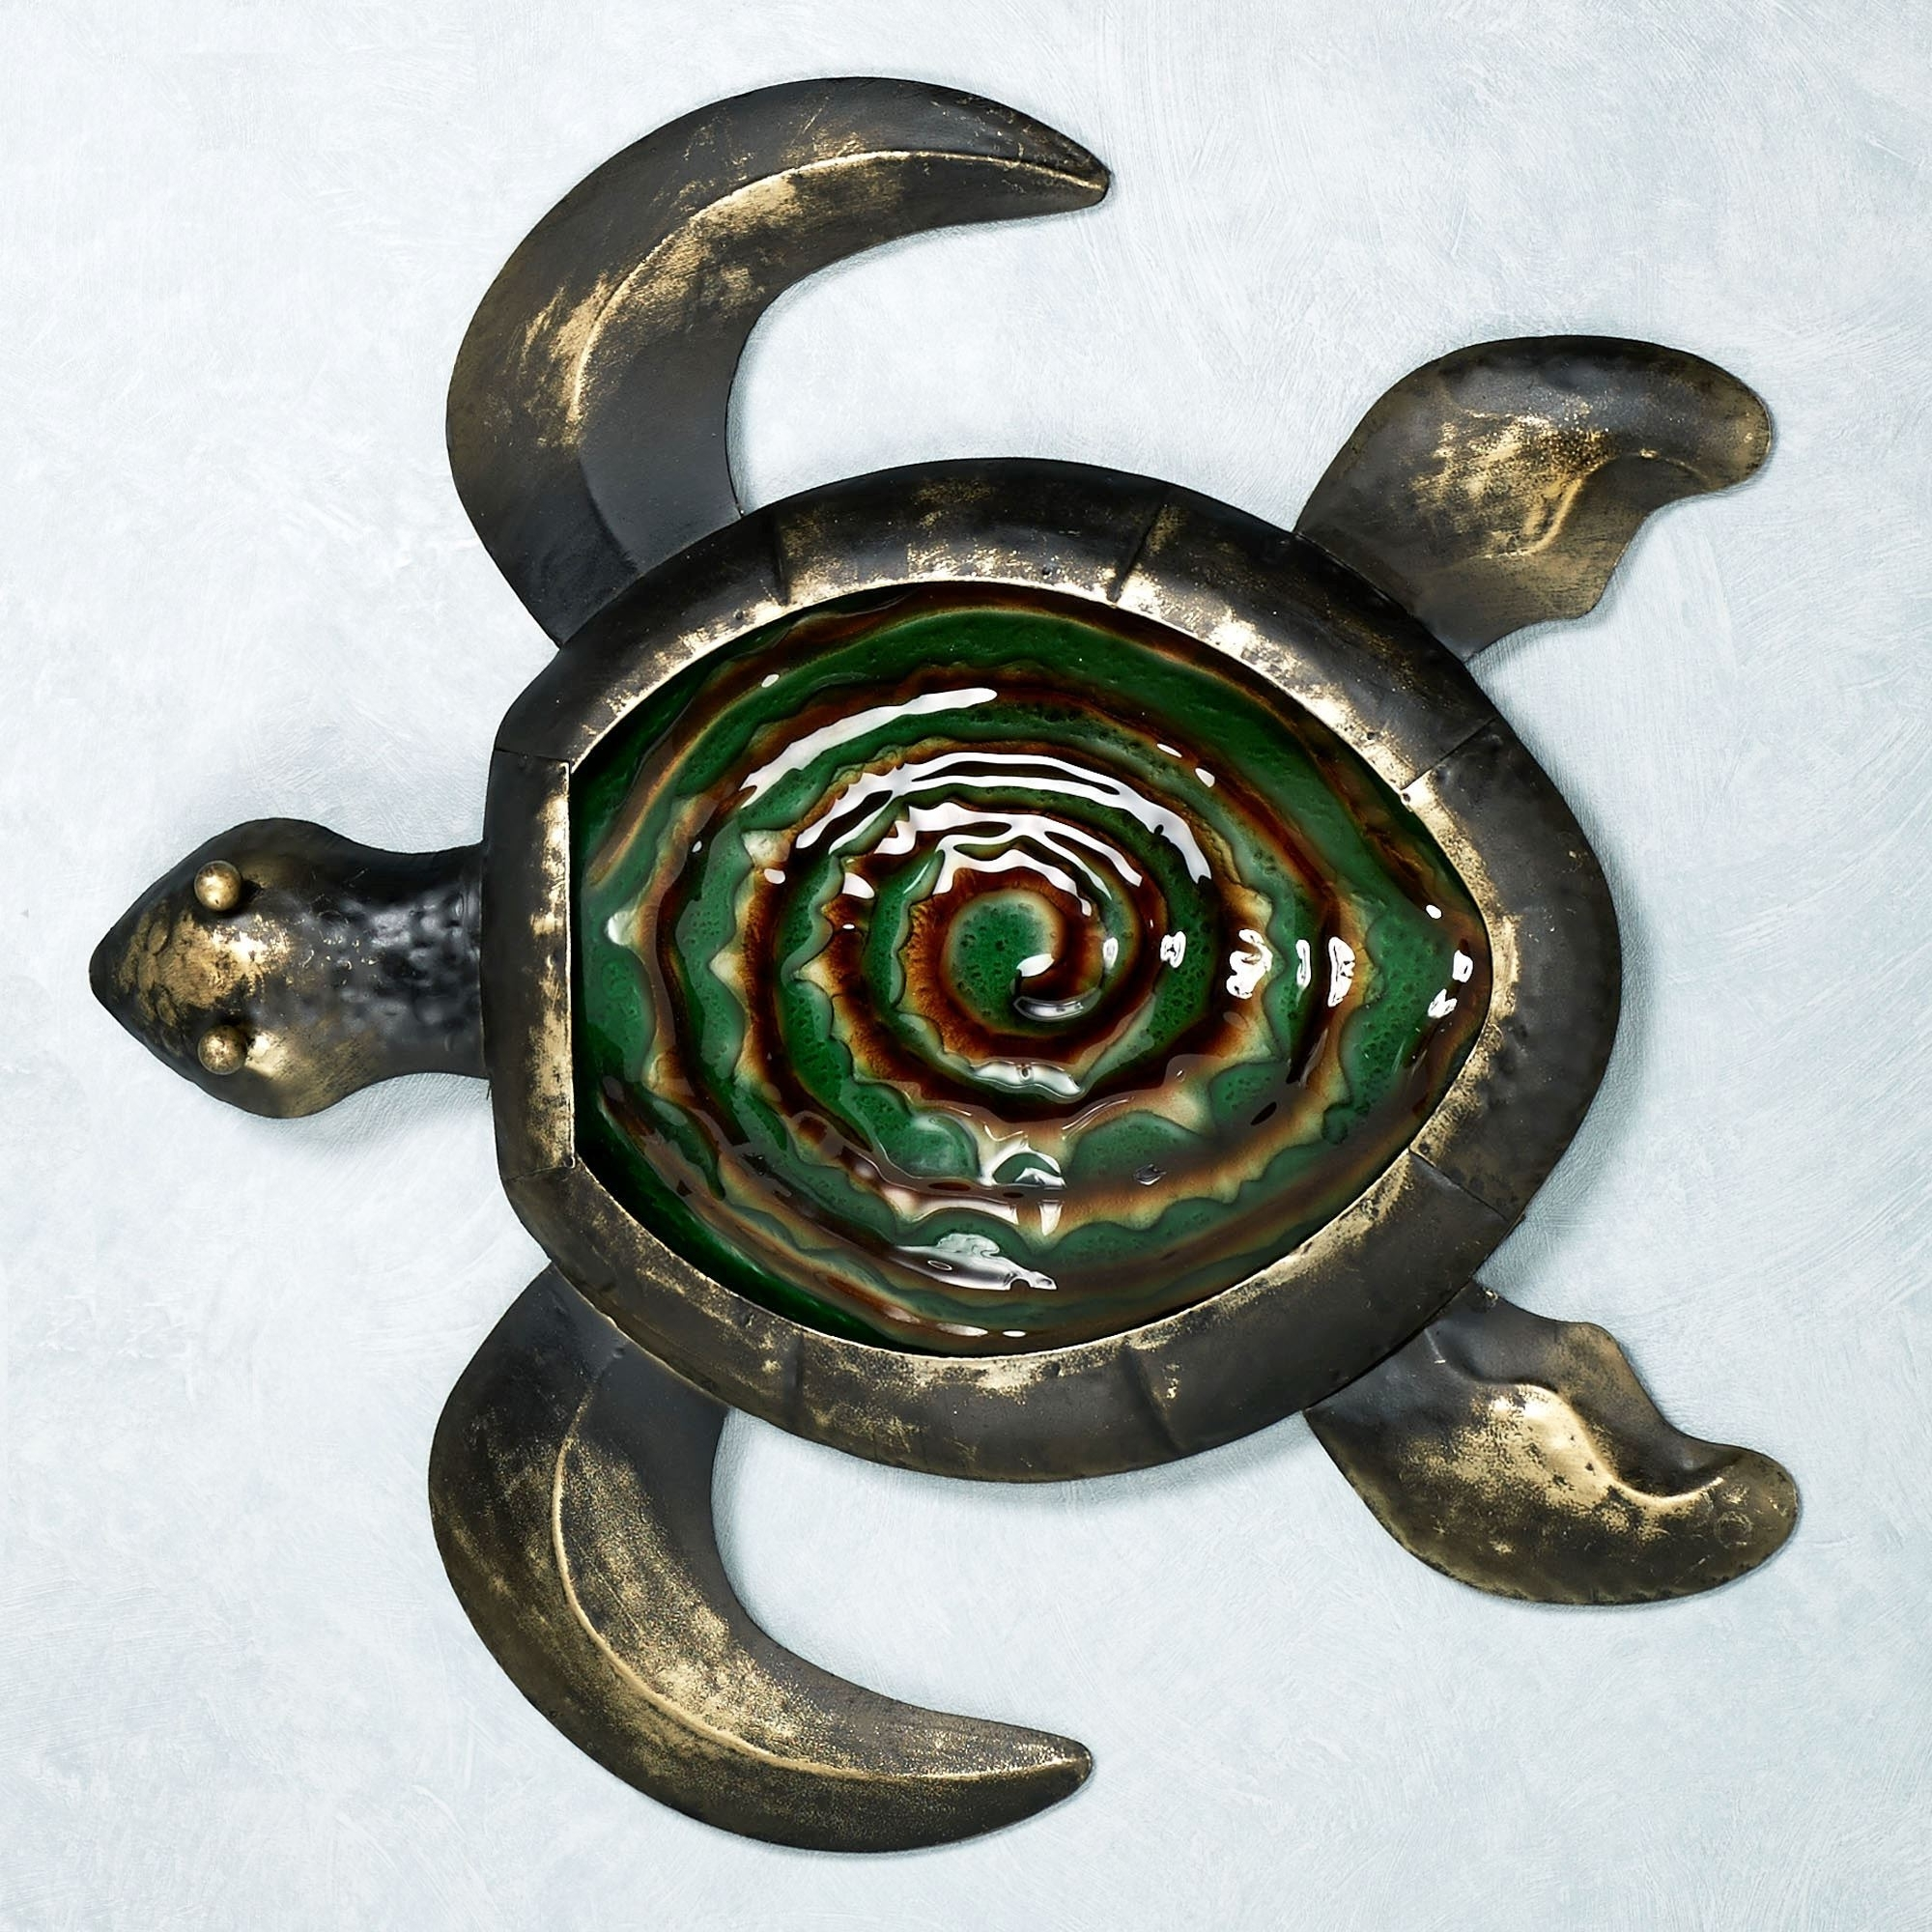 Sealife Indoor Outdoor Glass Metal Wall Art Inside Most Recent Sea Turtle Metal Wall Art (View 12 of 15)